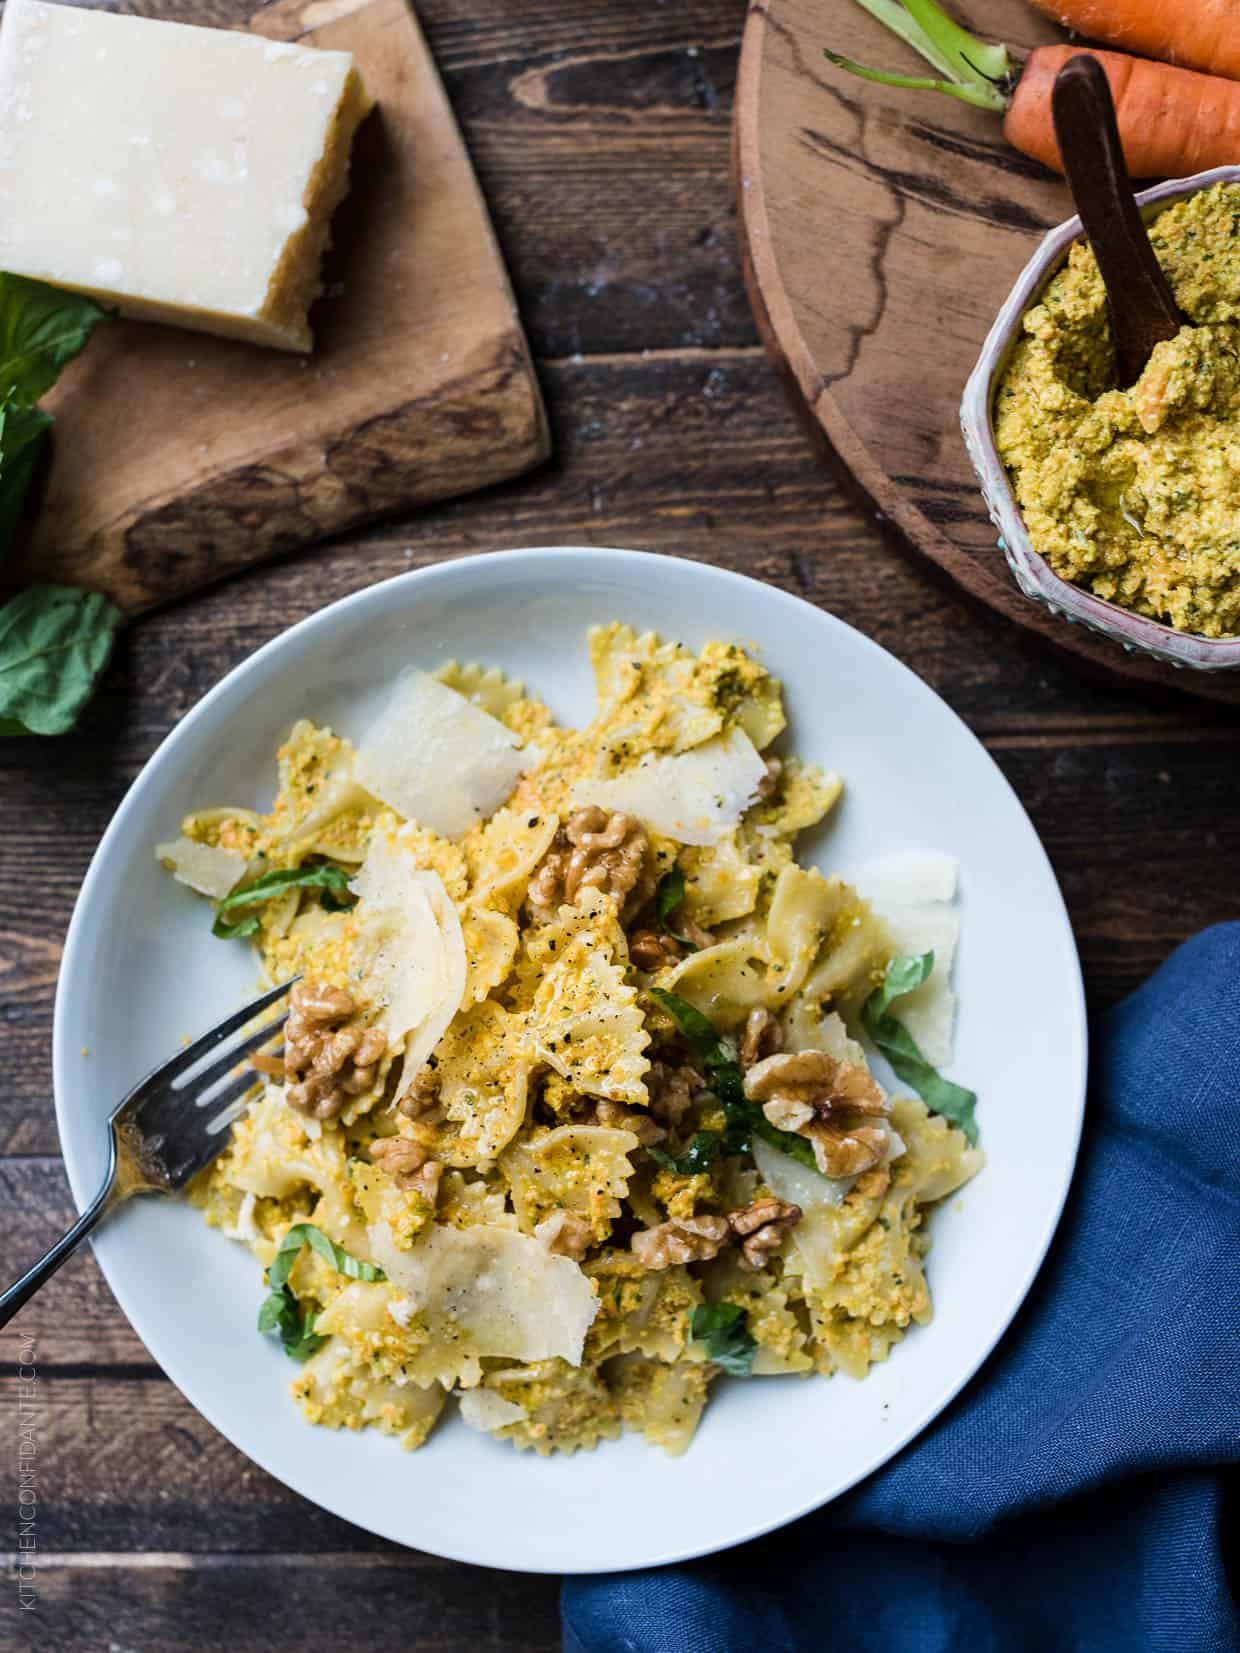 Farfalle with Roasted Carrot Pesto, Parmesan and Toasted Walnuts is a simple way to welcome warmer weather.